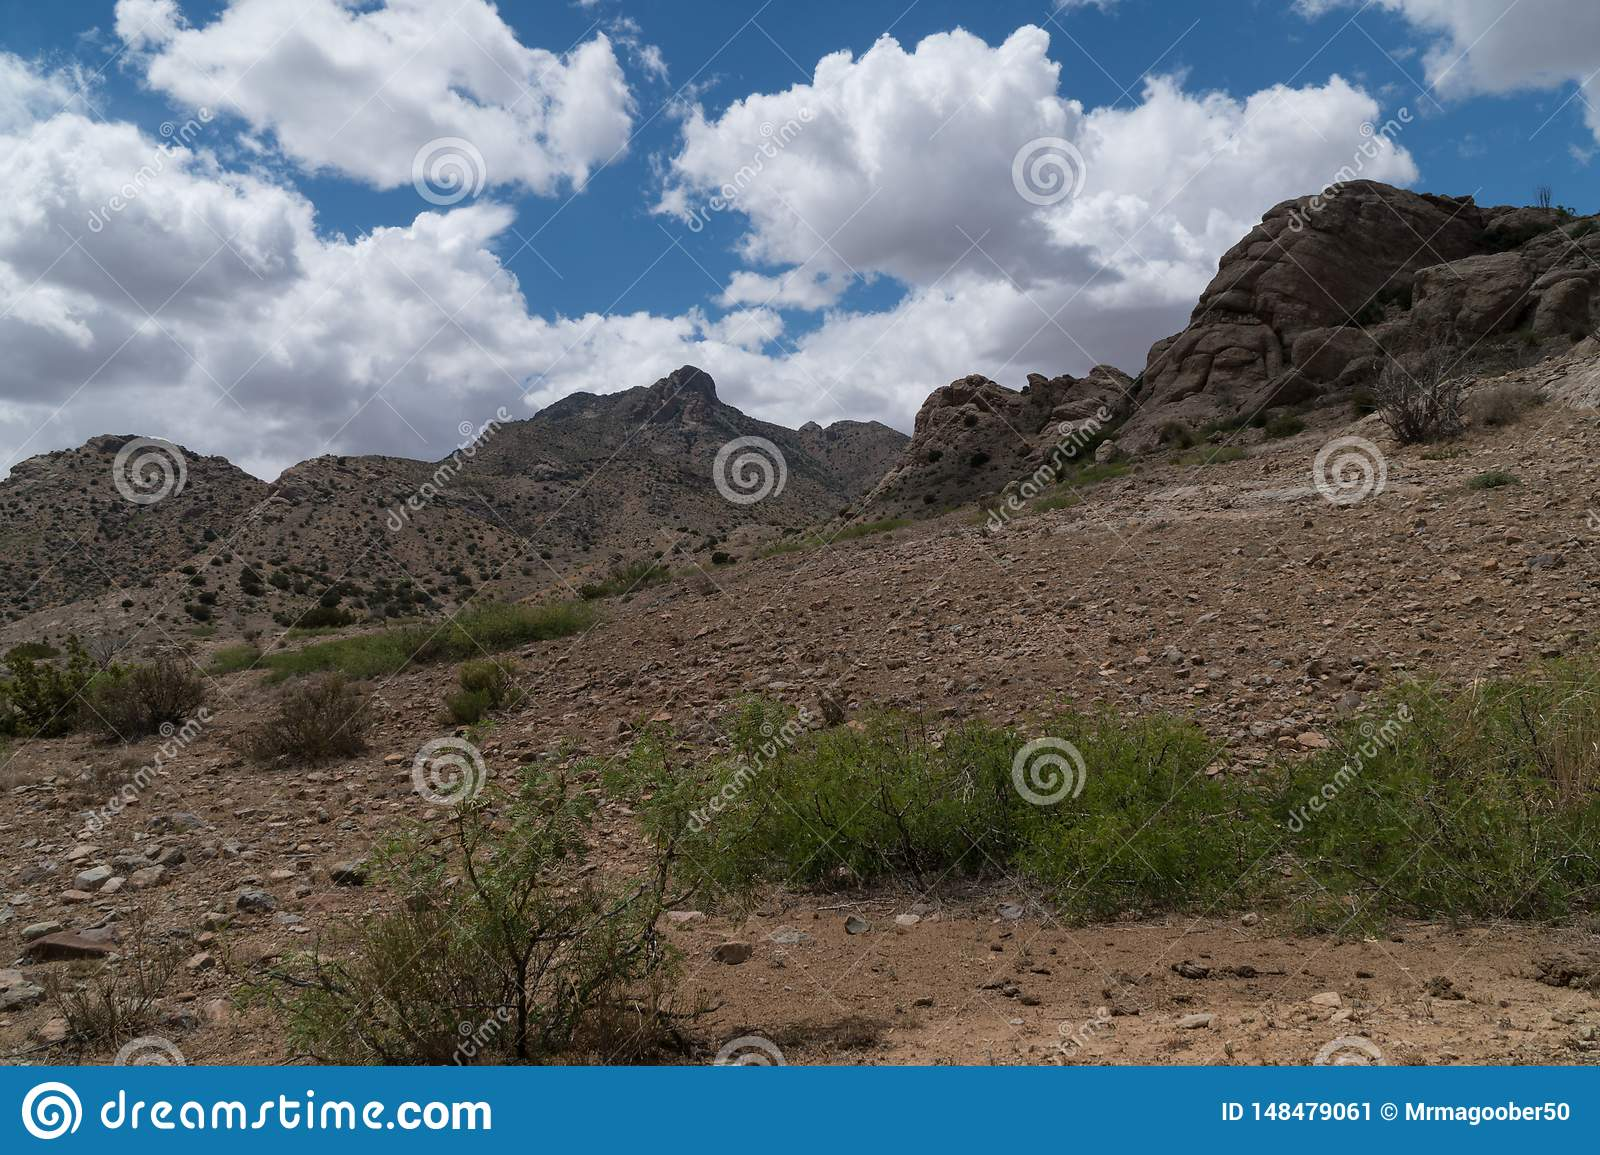 Florida Mountains scenic in southwest New Mexico